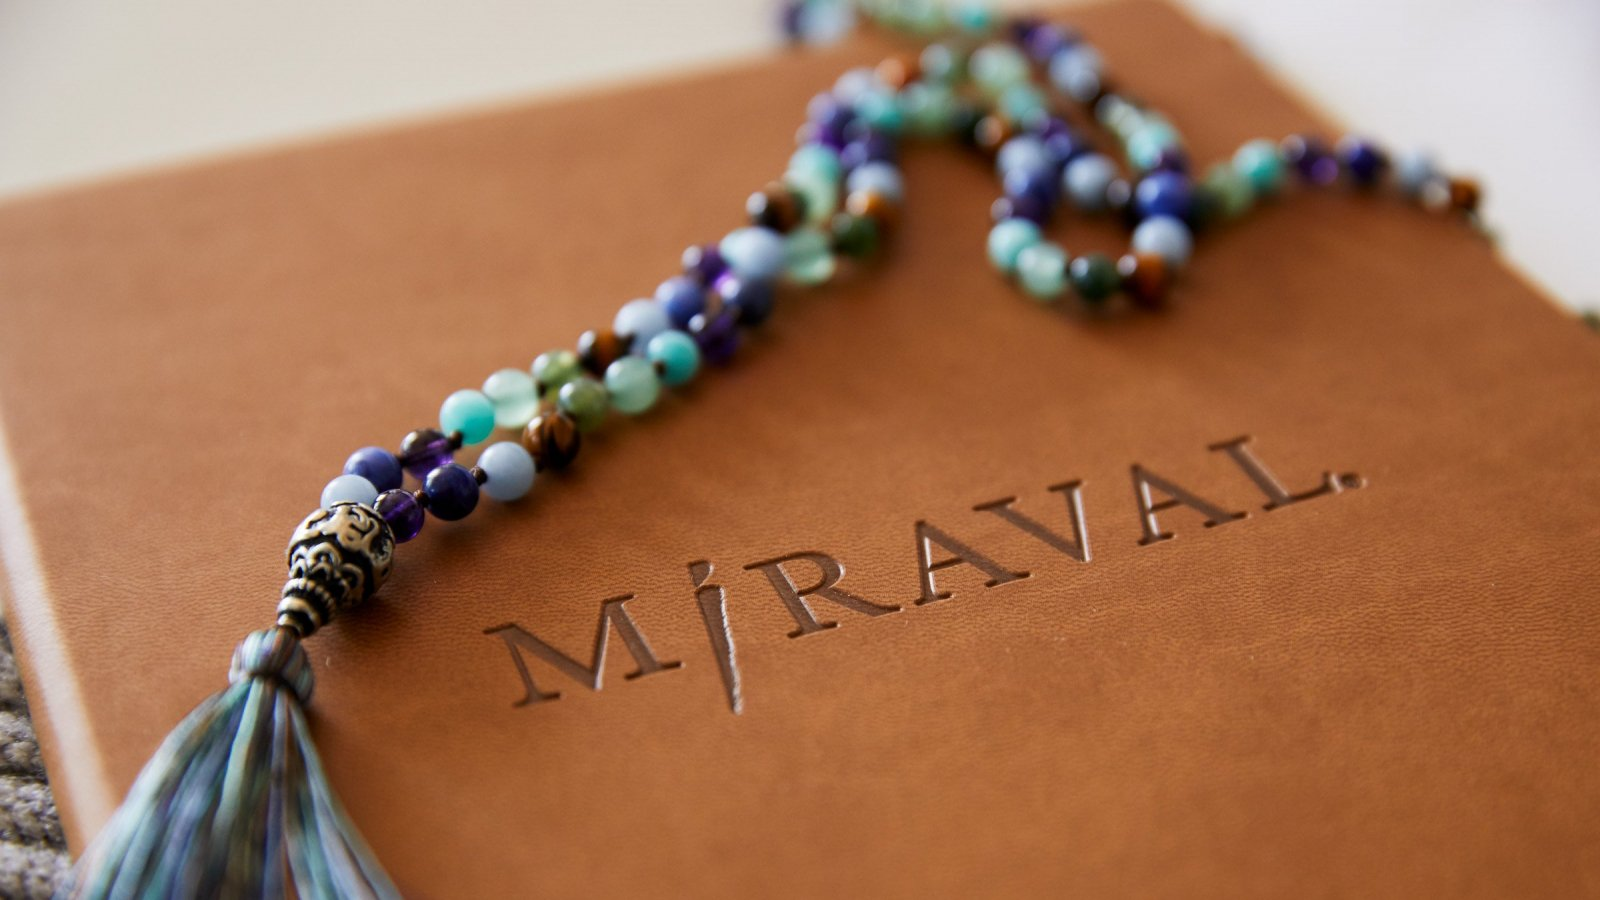 Miraval Journal with Mala